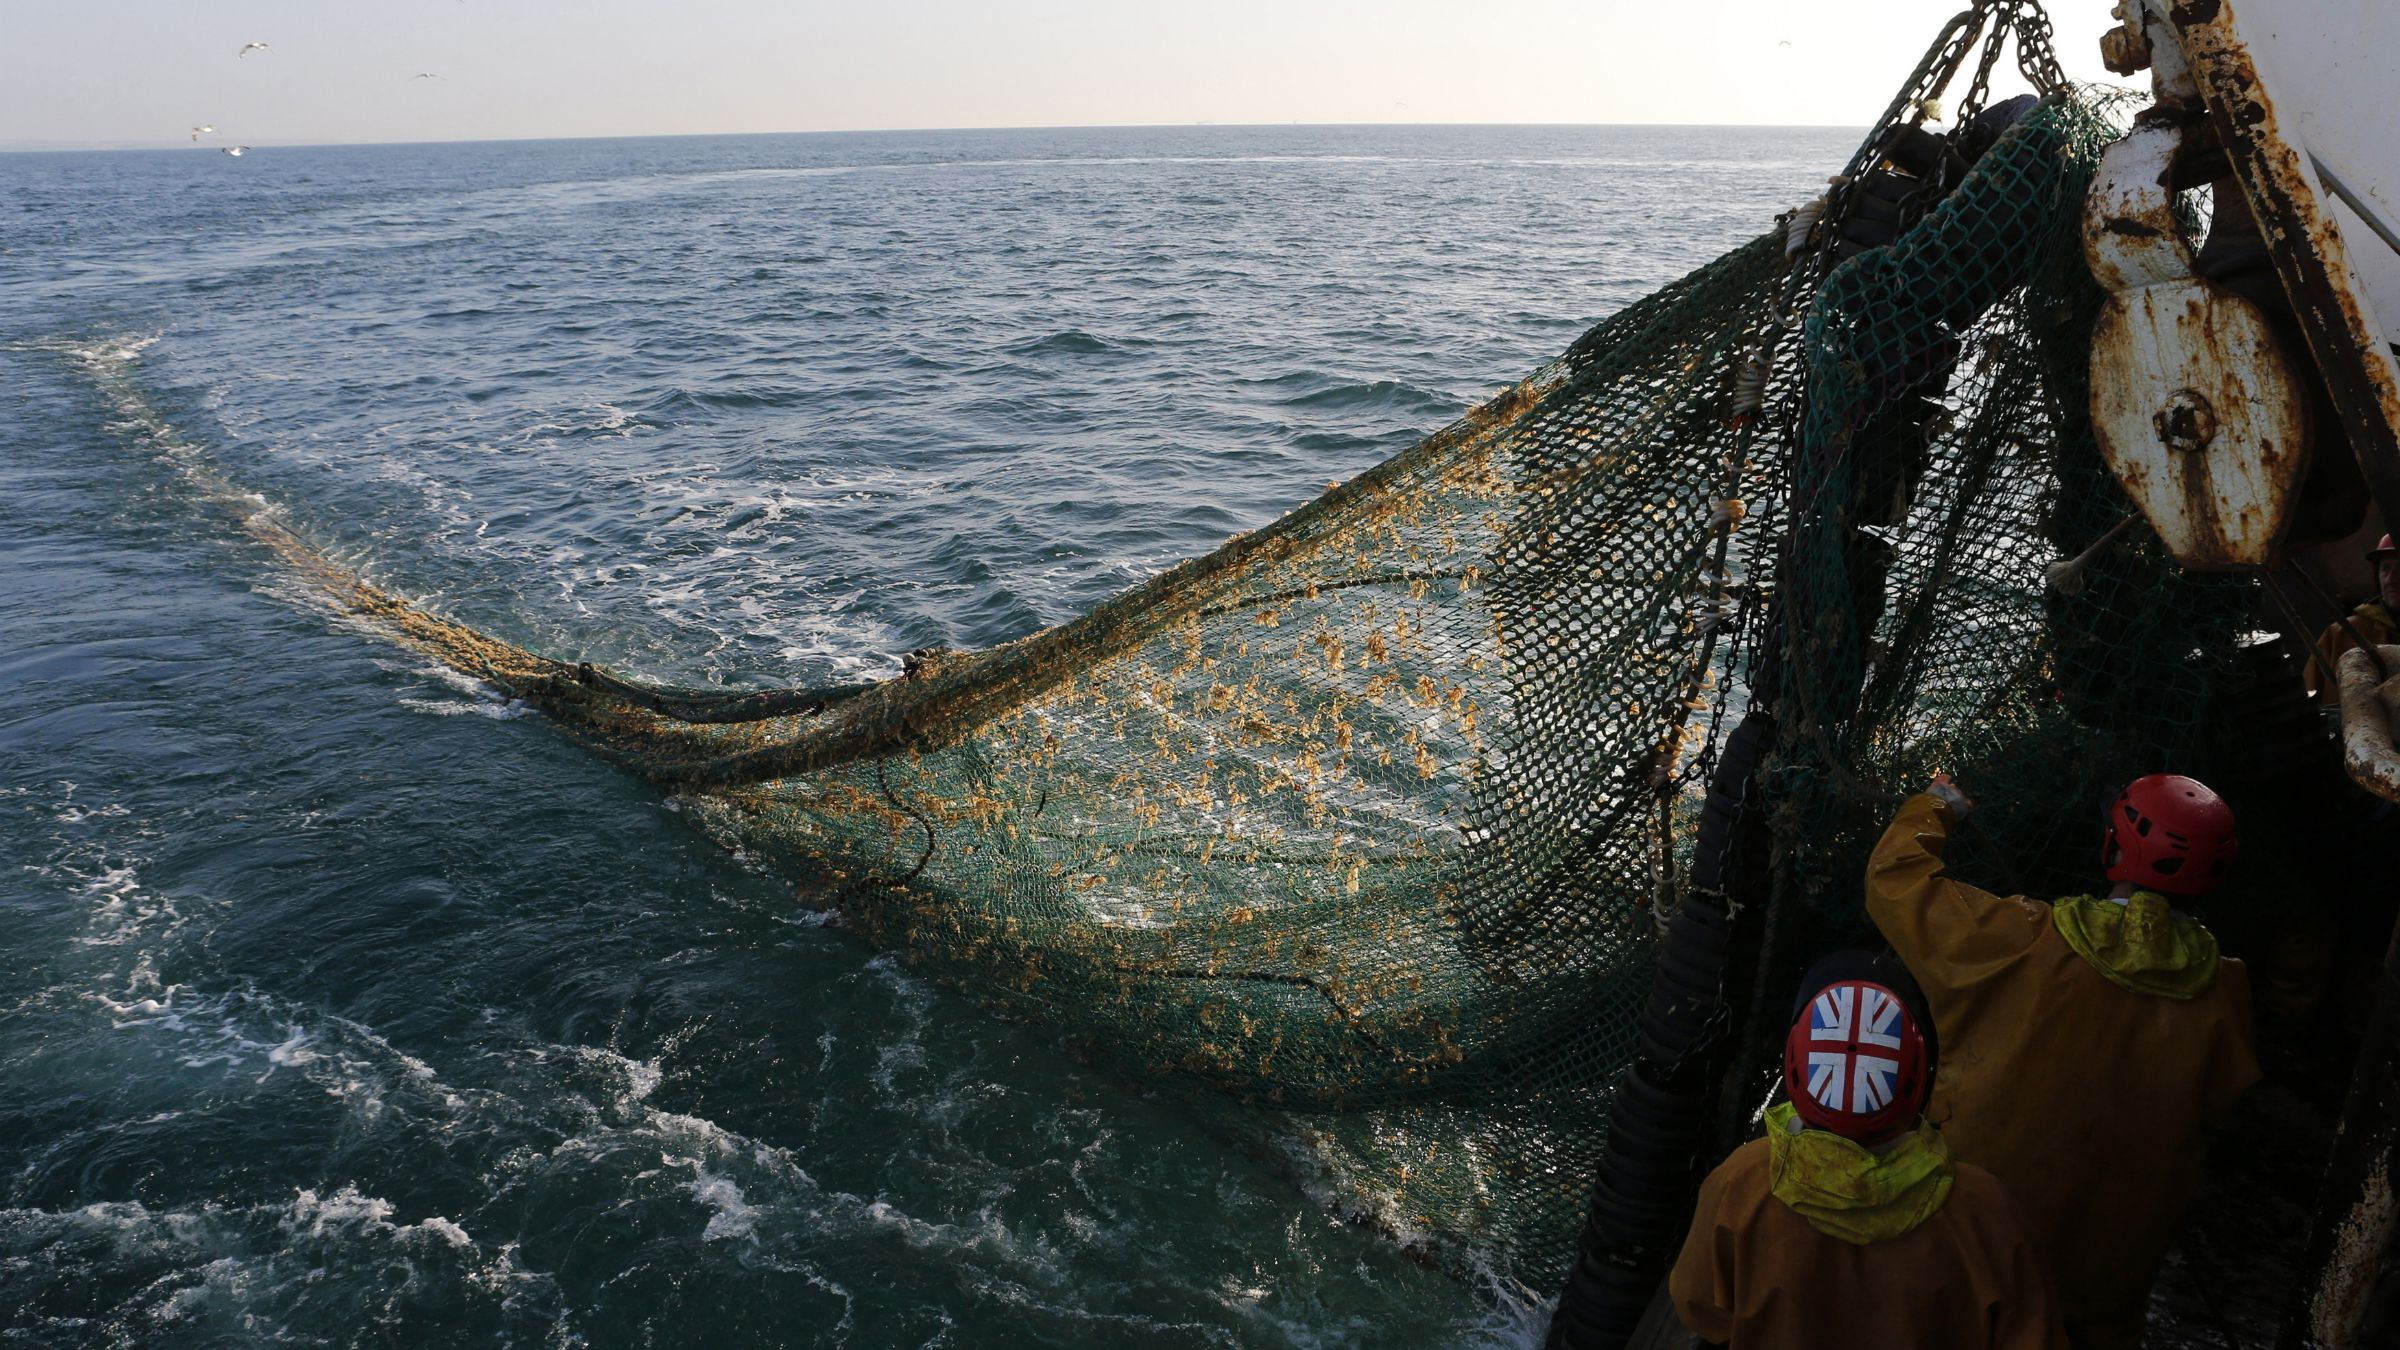 "overfishing subsidy net sustainable Fishermen on the Boulogne sur Mer based trawler ""Nicolas Jeremy"" raise the fishing nets, off the coast of northern France September 23, 2013. Fishermen will not get European Union subsidies to build new vessels, EU lawmakers agreed on October 23. Voting on how to allocate nearly 1 billion euros ($1.4 billion) in annual fisheries subsidies up to 2020, the European Parliament said more money should be spent on assessing the state of Europe's depleted stocks. If confirmed in talks with governments, the proposals could spell relief for the estimated 75 percent of EU fish stocks that the European Commission says are over-fished. Picture taken September 23, 2013. REUTERS/Pascal Rossignol"